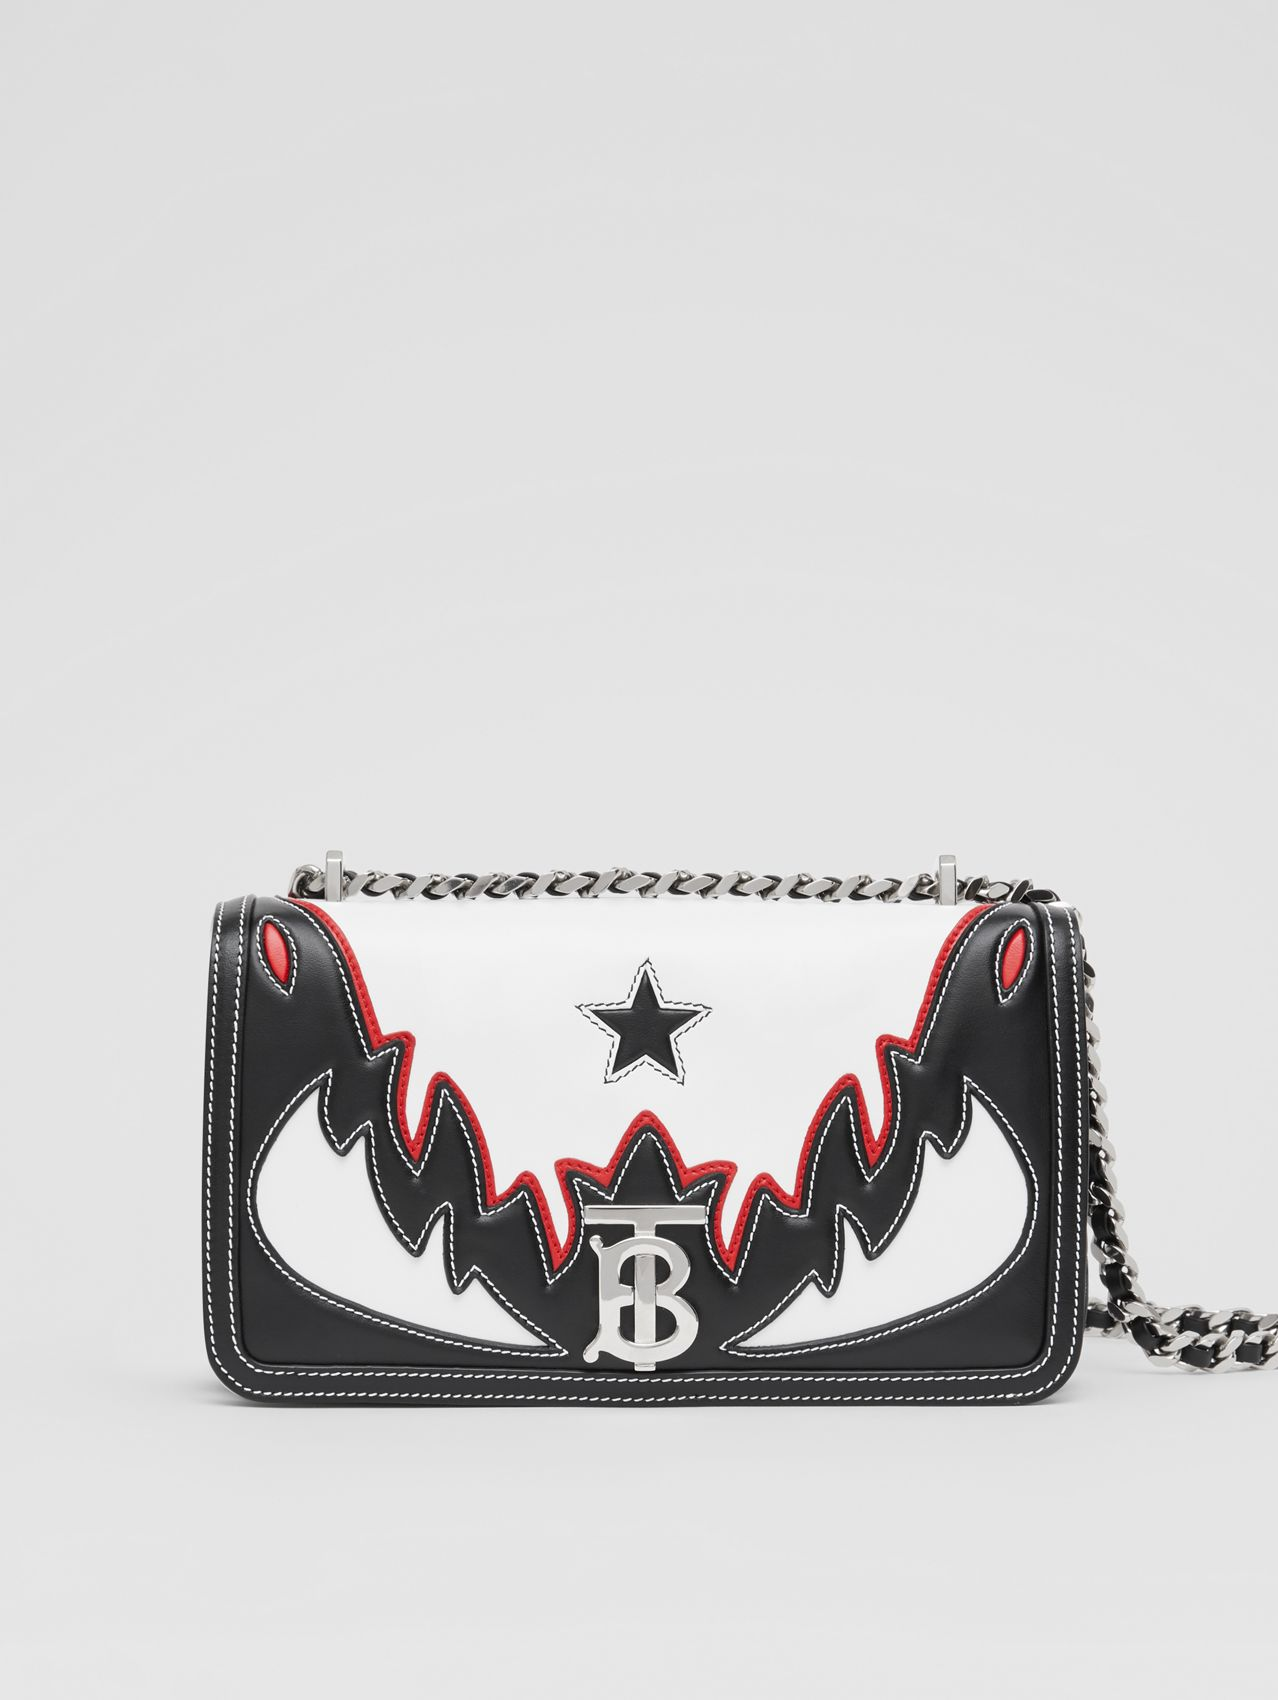 Small Topstitch Appliqué Leather Lola Bag (White/black/red)